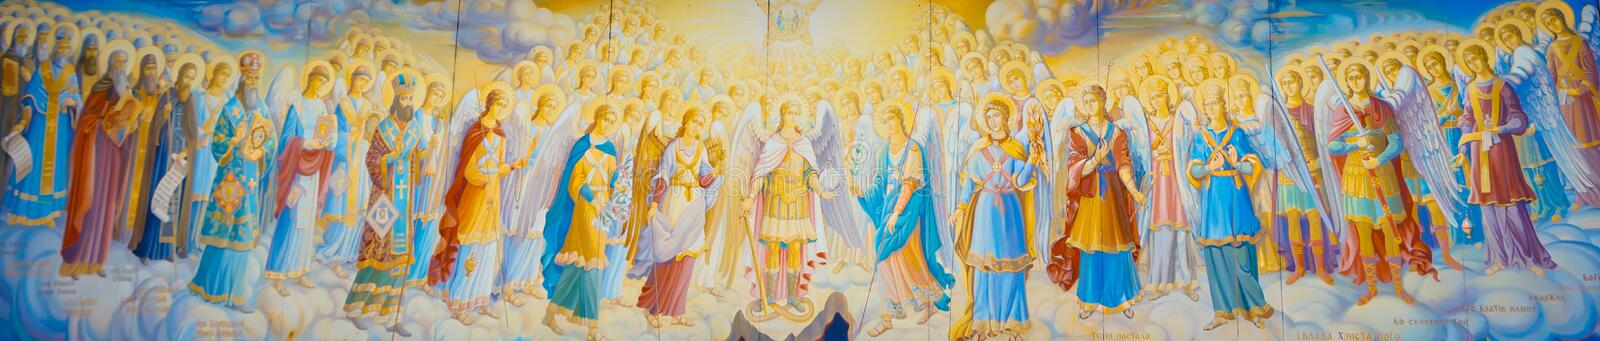 All archangels and saints. All the saints and archangels. Suitable for painting, murals, wall picture, or for site royalty free stock images